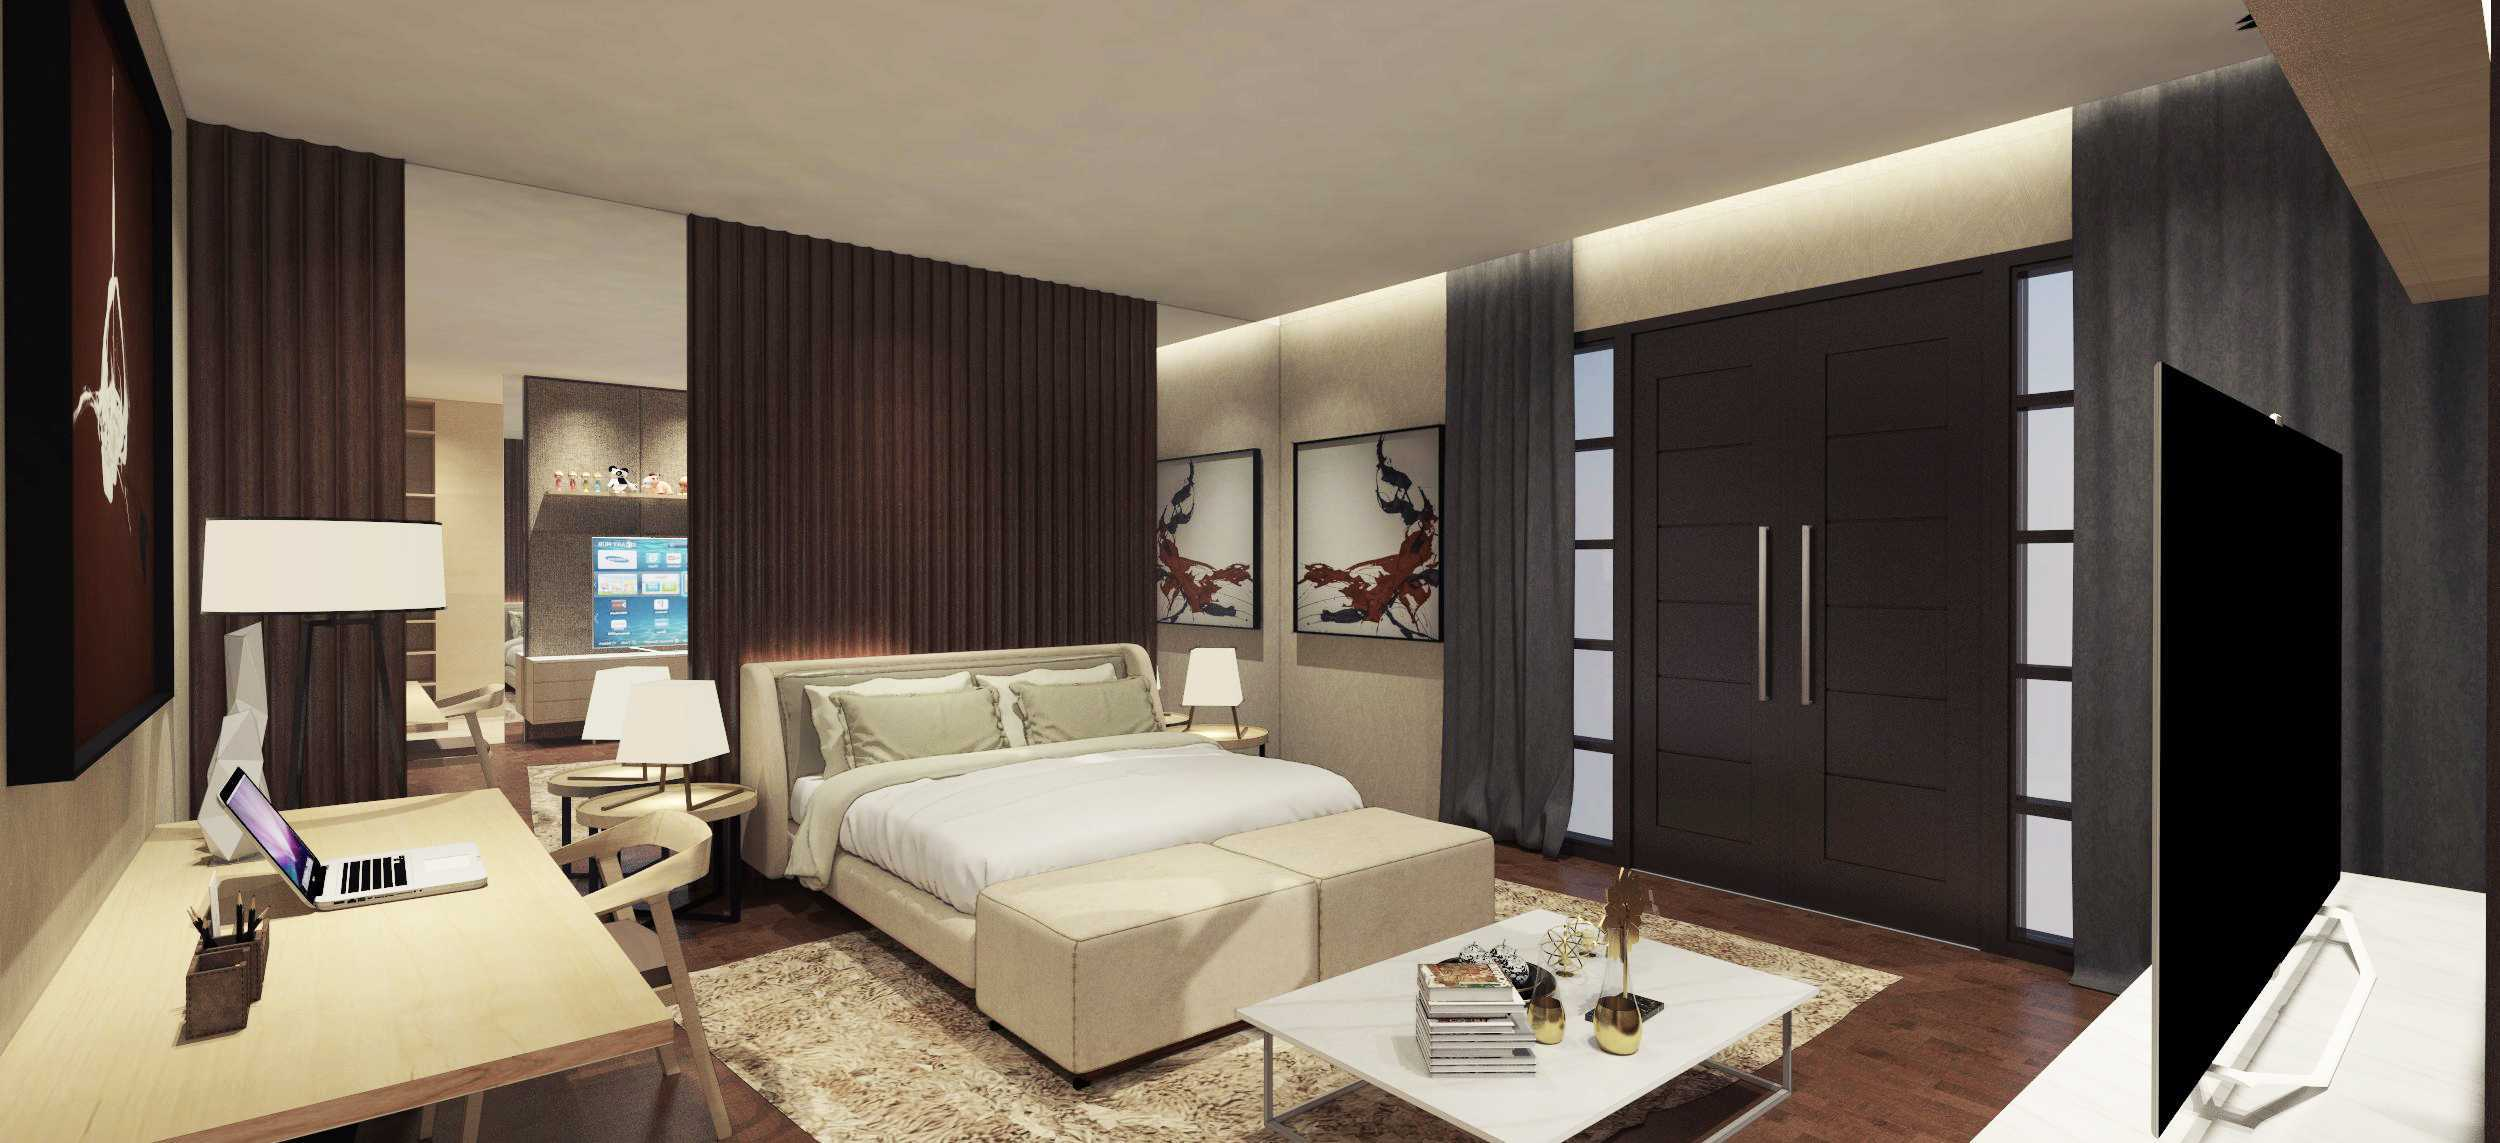 Ari Wibowo Design (Aw.d) Aw House Makassar, Makassar City, South Sulawesi, Indonesia Makassar Bedroom Modern  9418